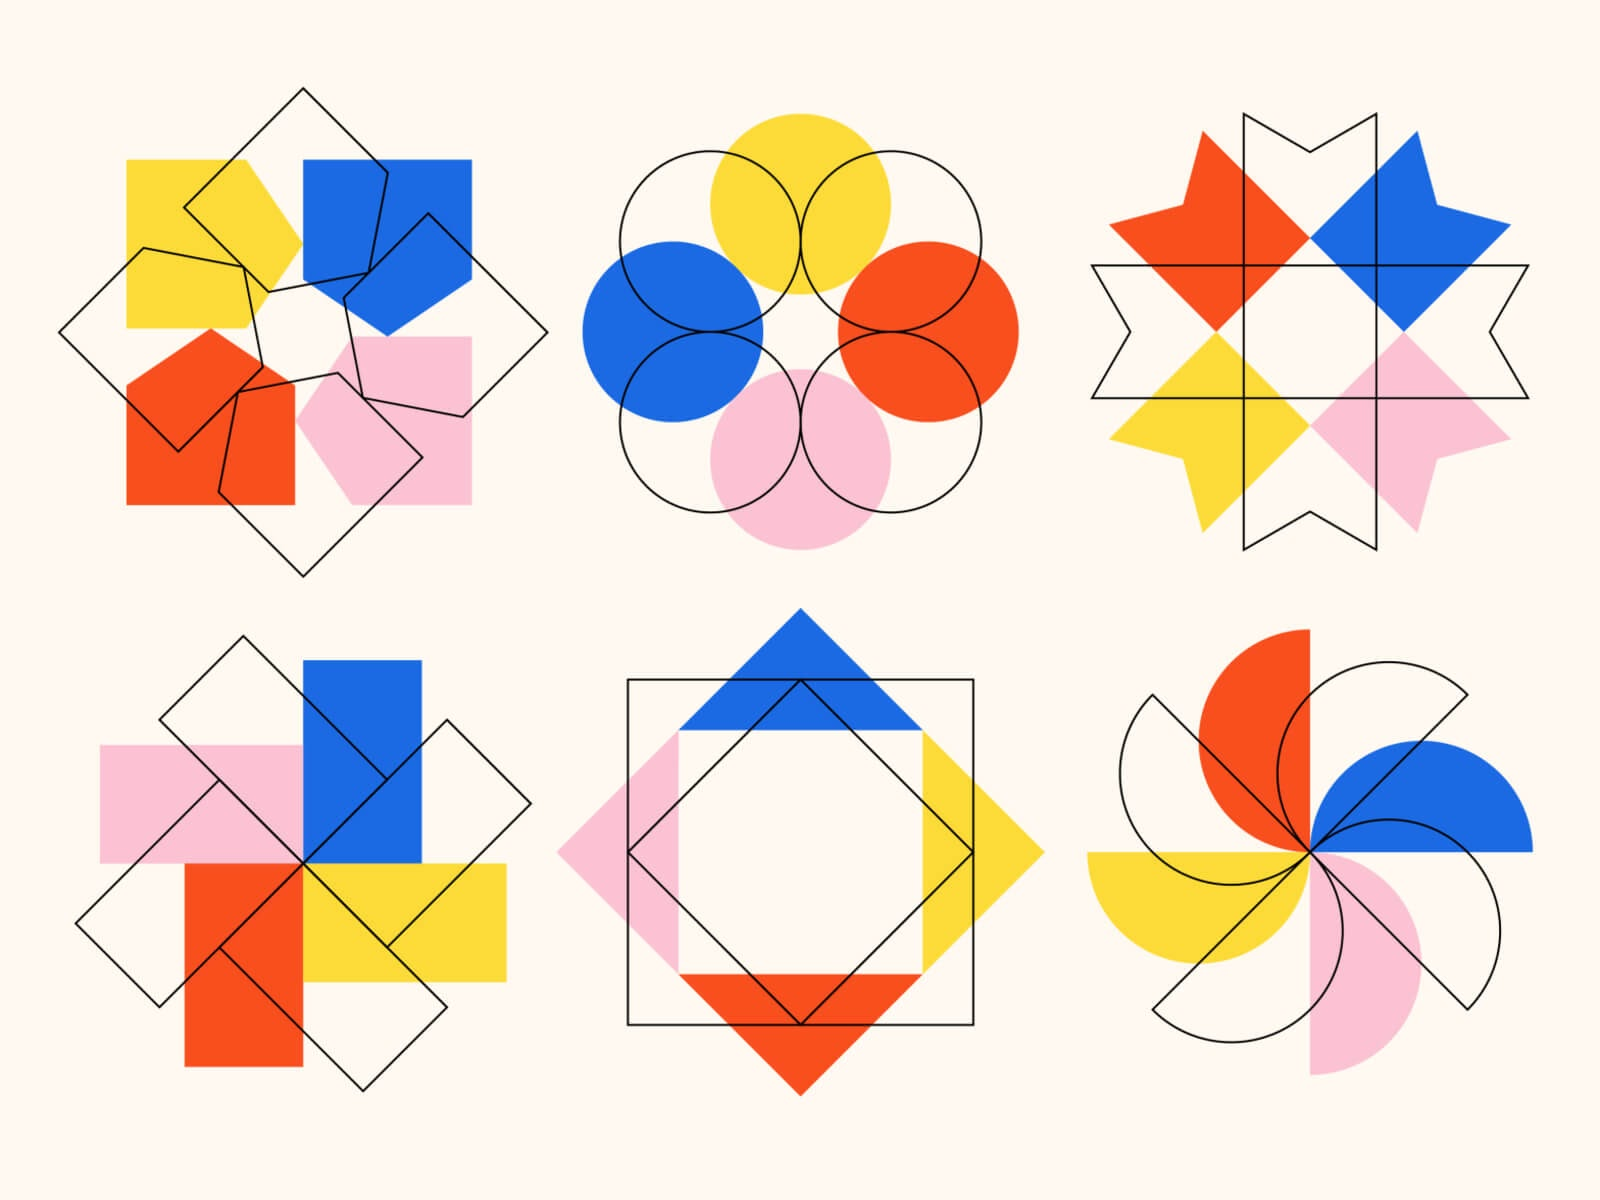 A collection of geometric shapes by Ray Dak Lam.